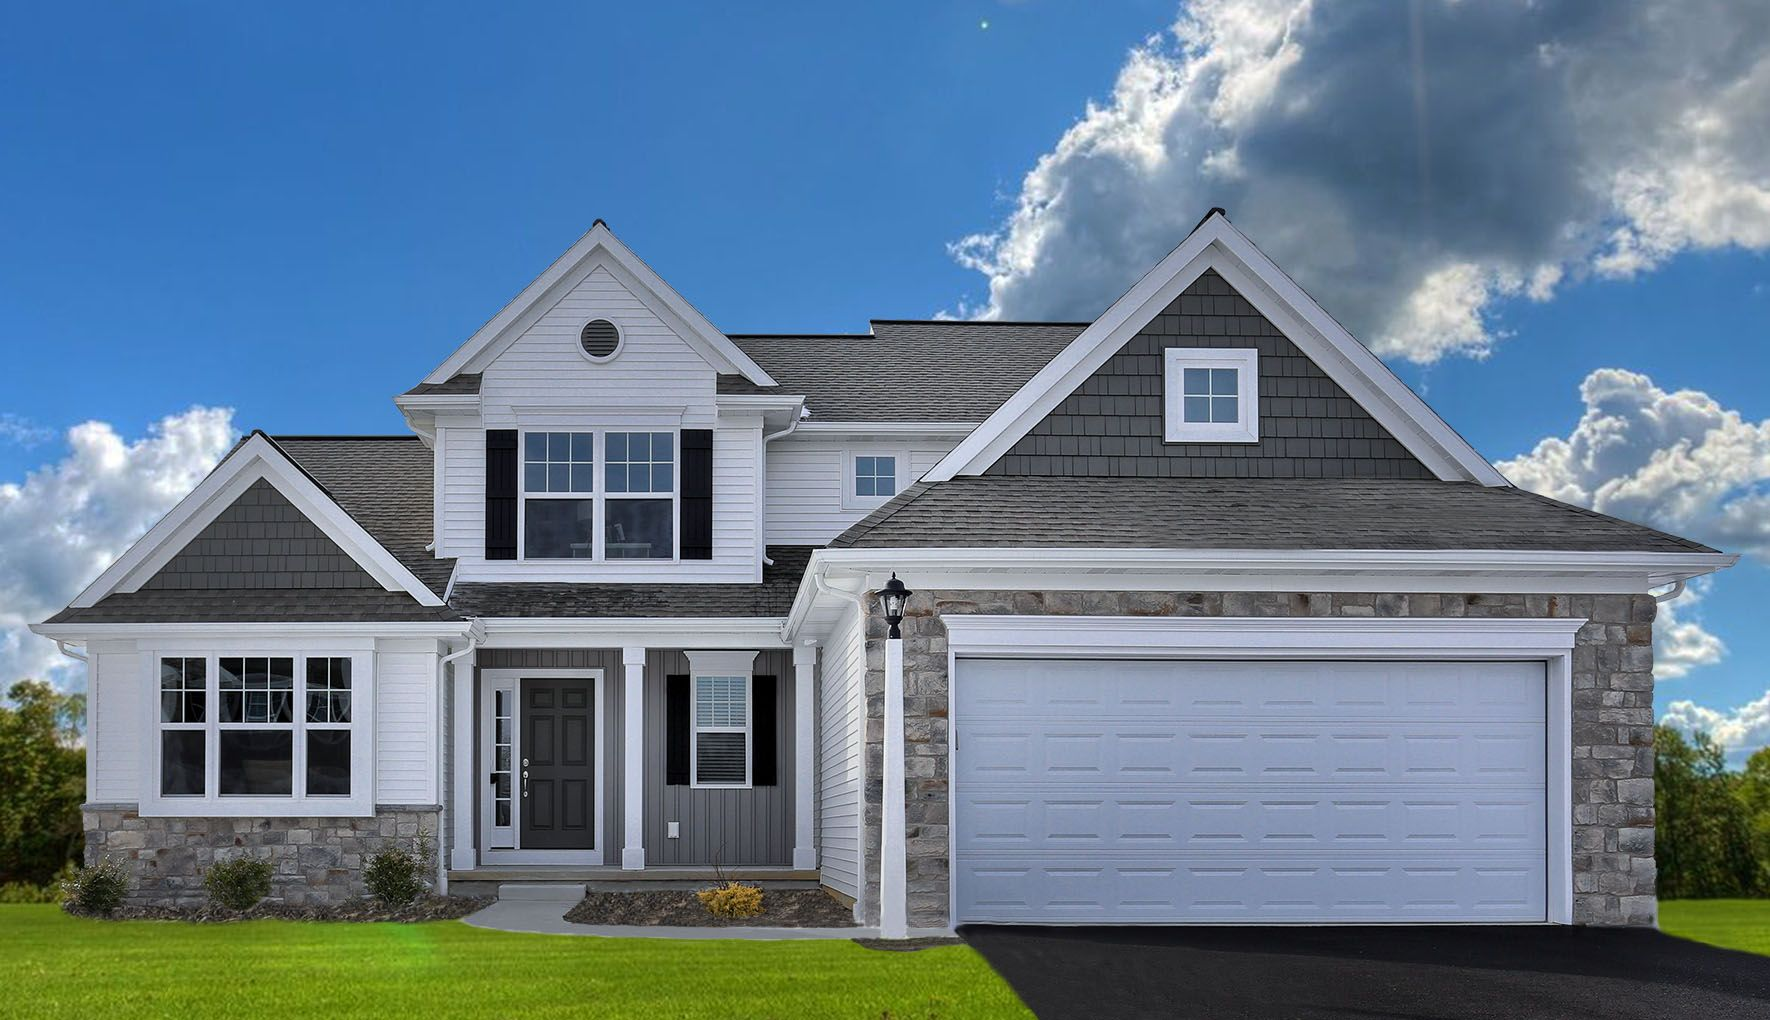 White D 4 Harbor Grey Board Batten Misty Shadow Shakes Black Shutters White Trim Black Shutters White Siding Exterior House Colors